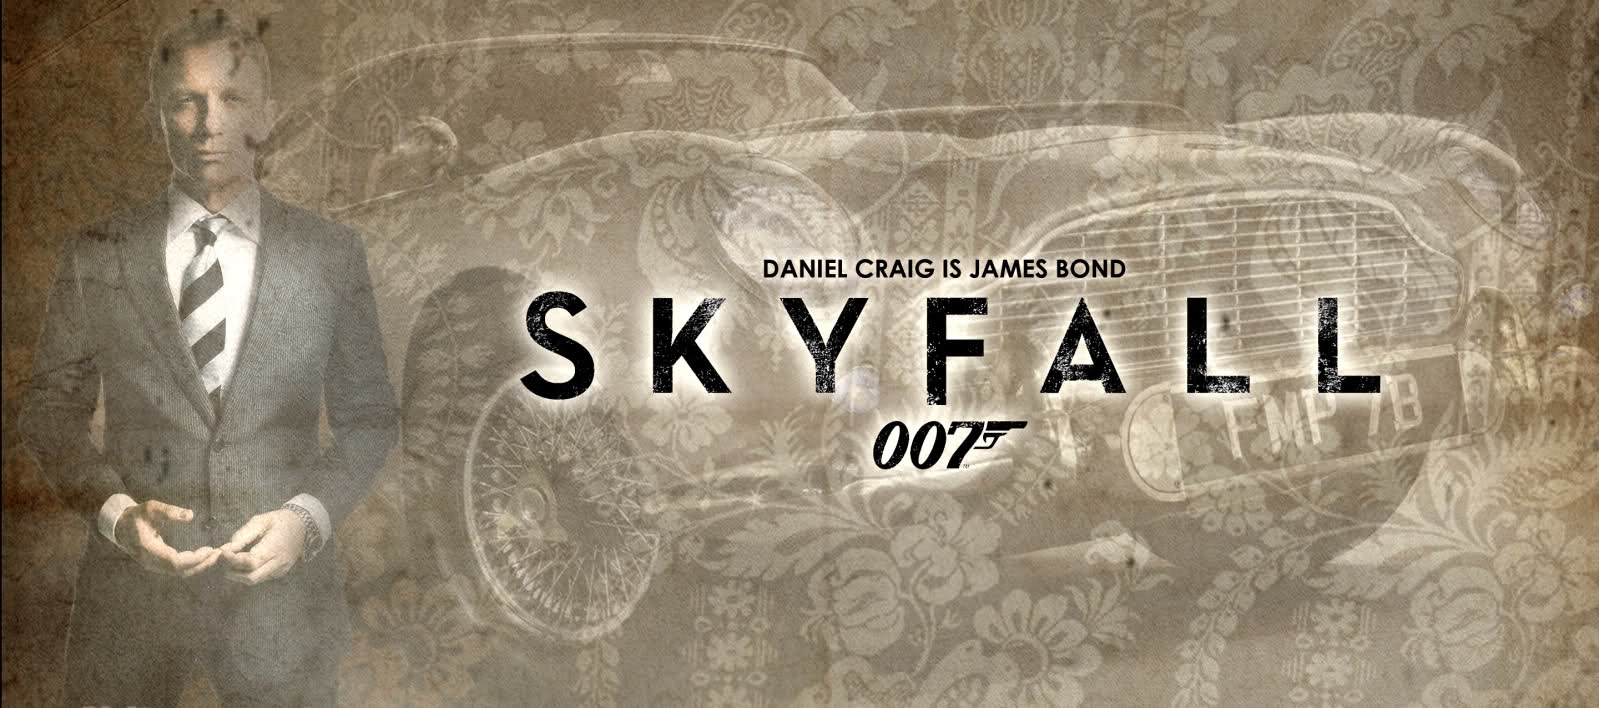 James Bond 007 Skyfall wallpaper 6